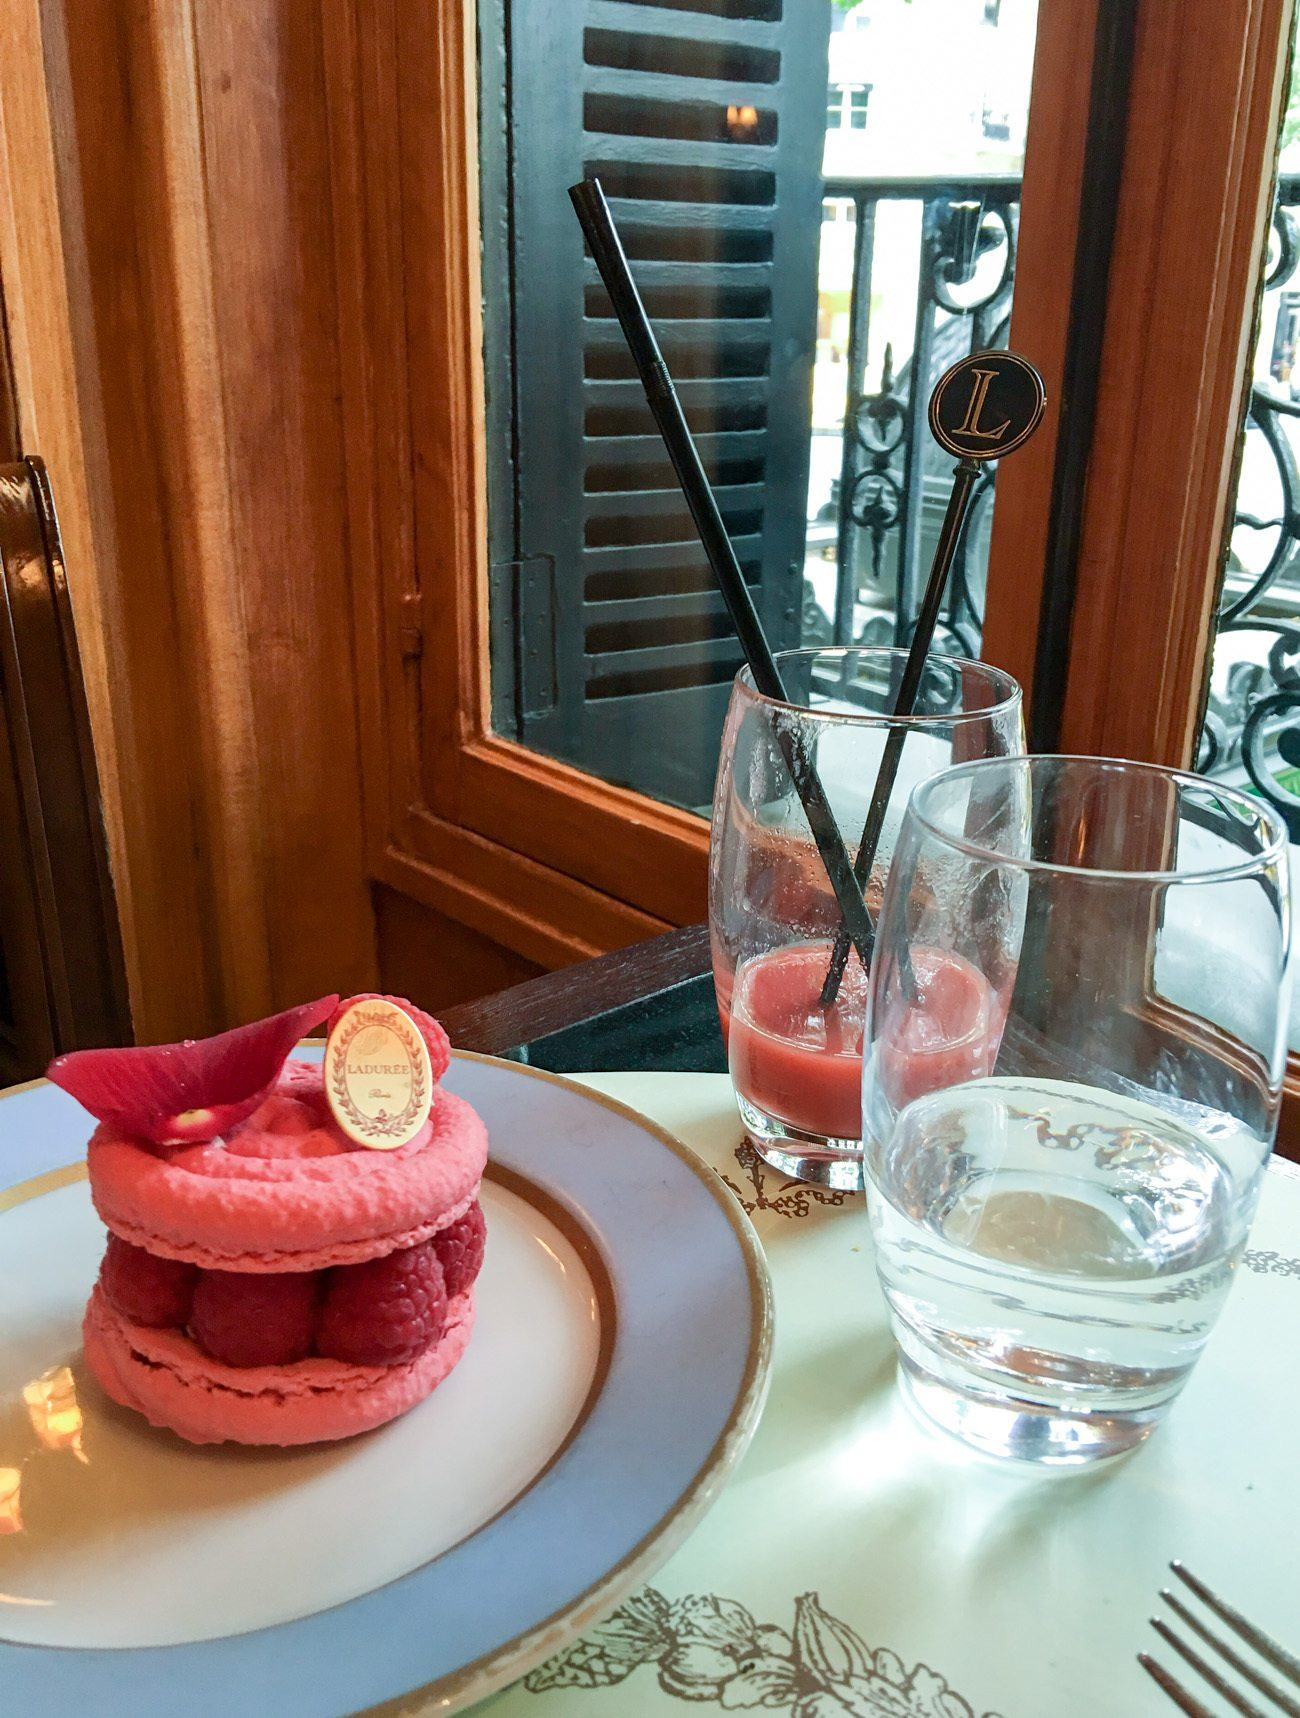 A rose and raspberry macaron dessert at the Laduree tea room on rue Royale in Paris.